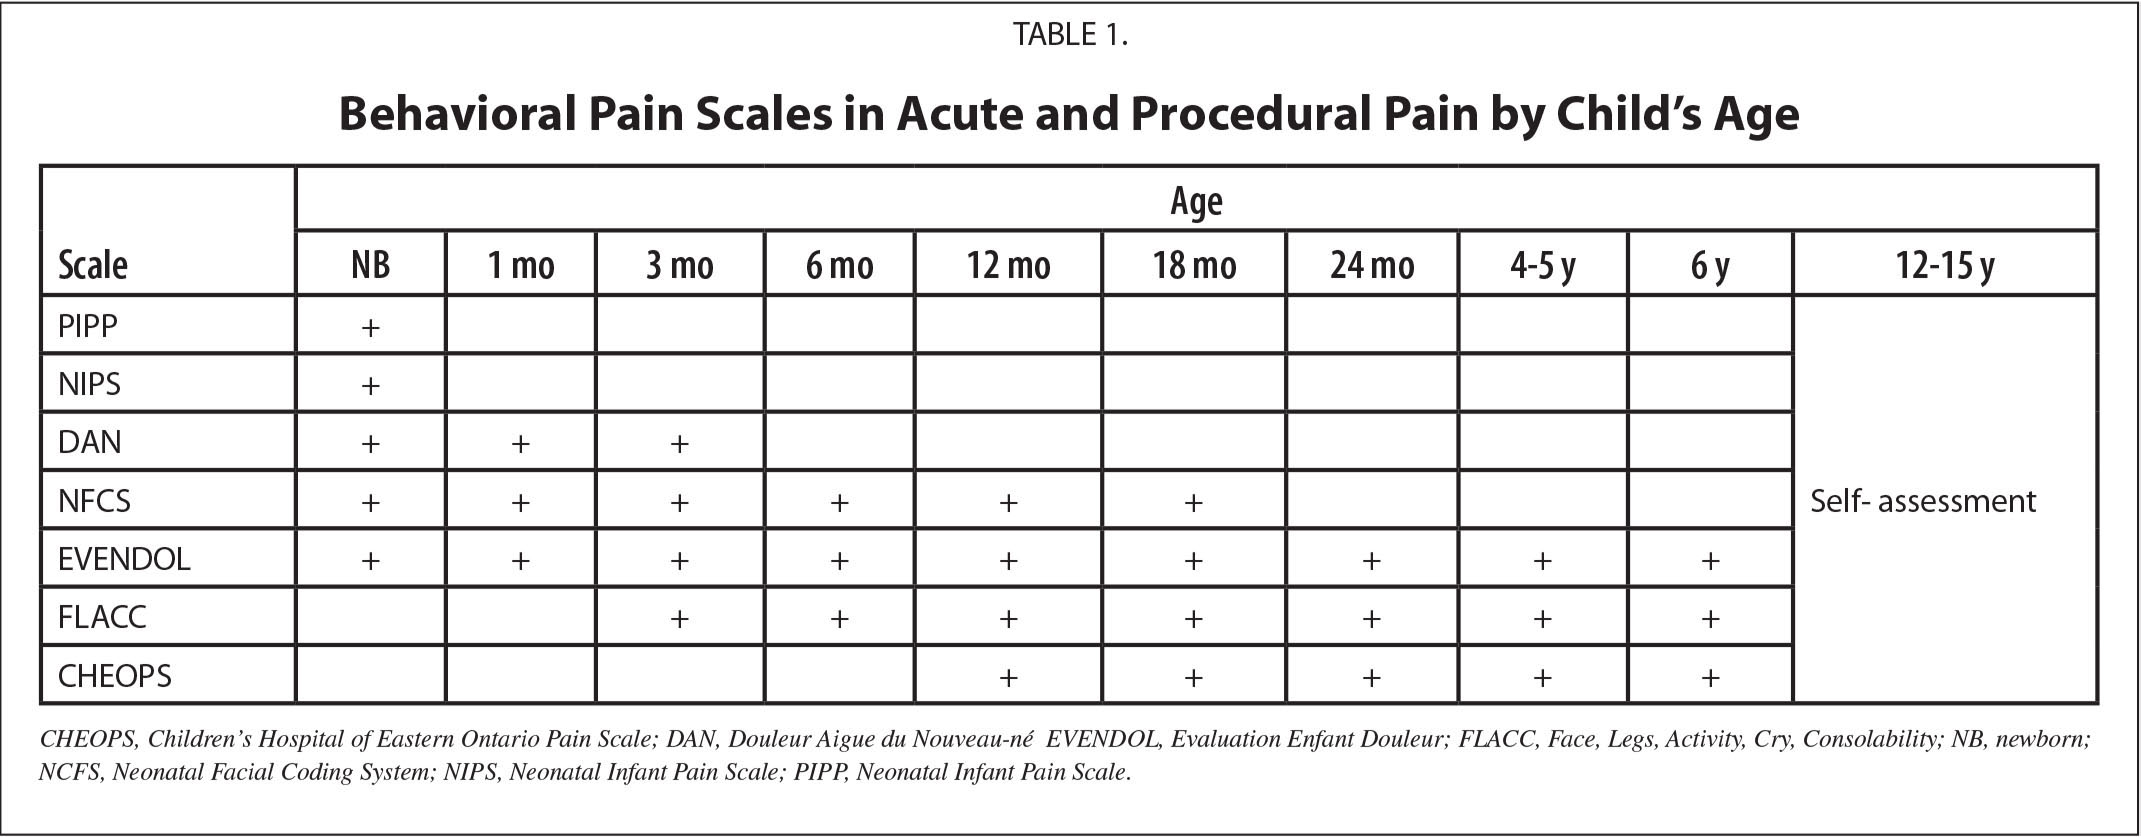 Behavioral Pain Scales in Acute and Procedural Pain by Child's Age